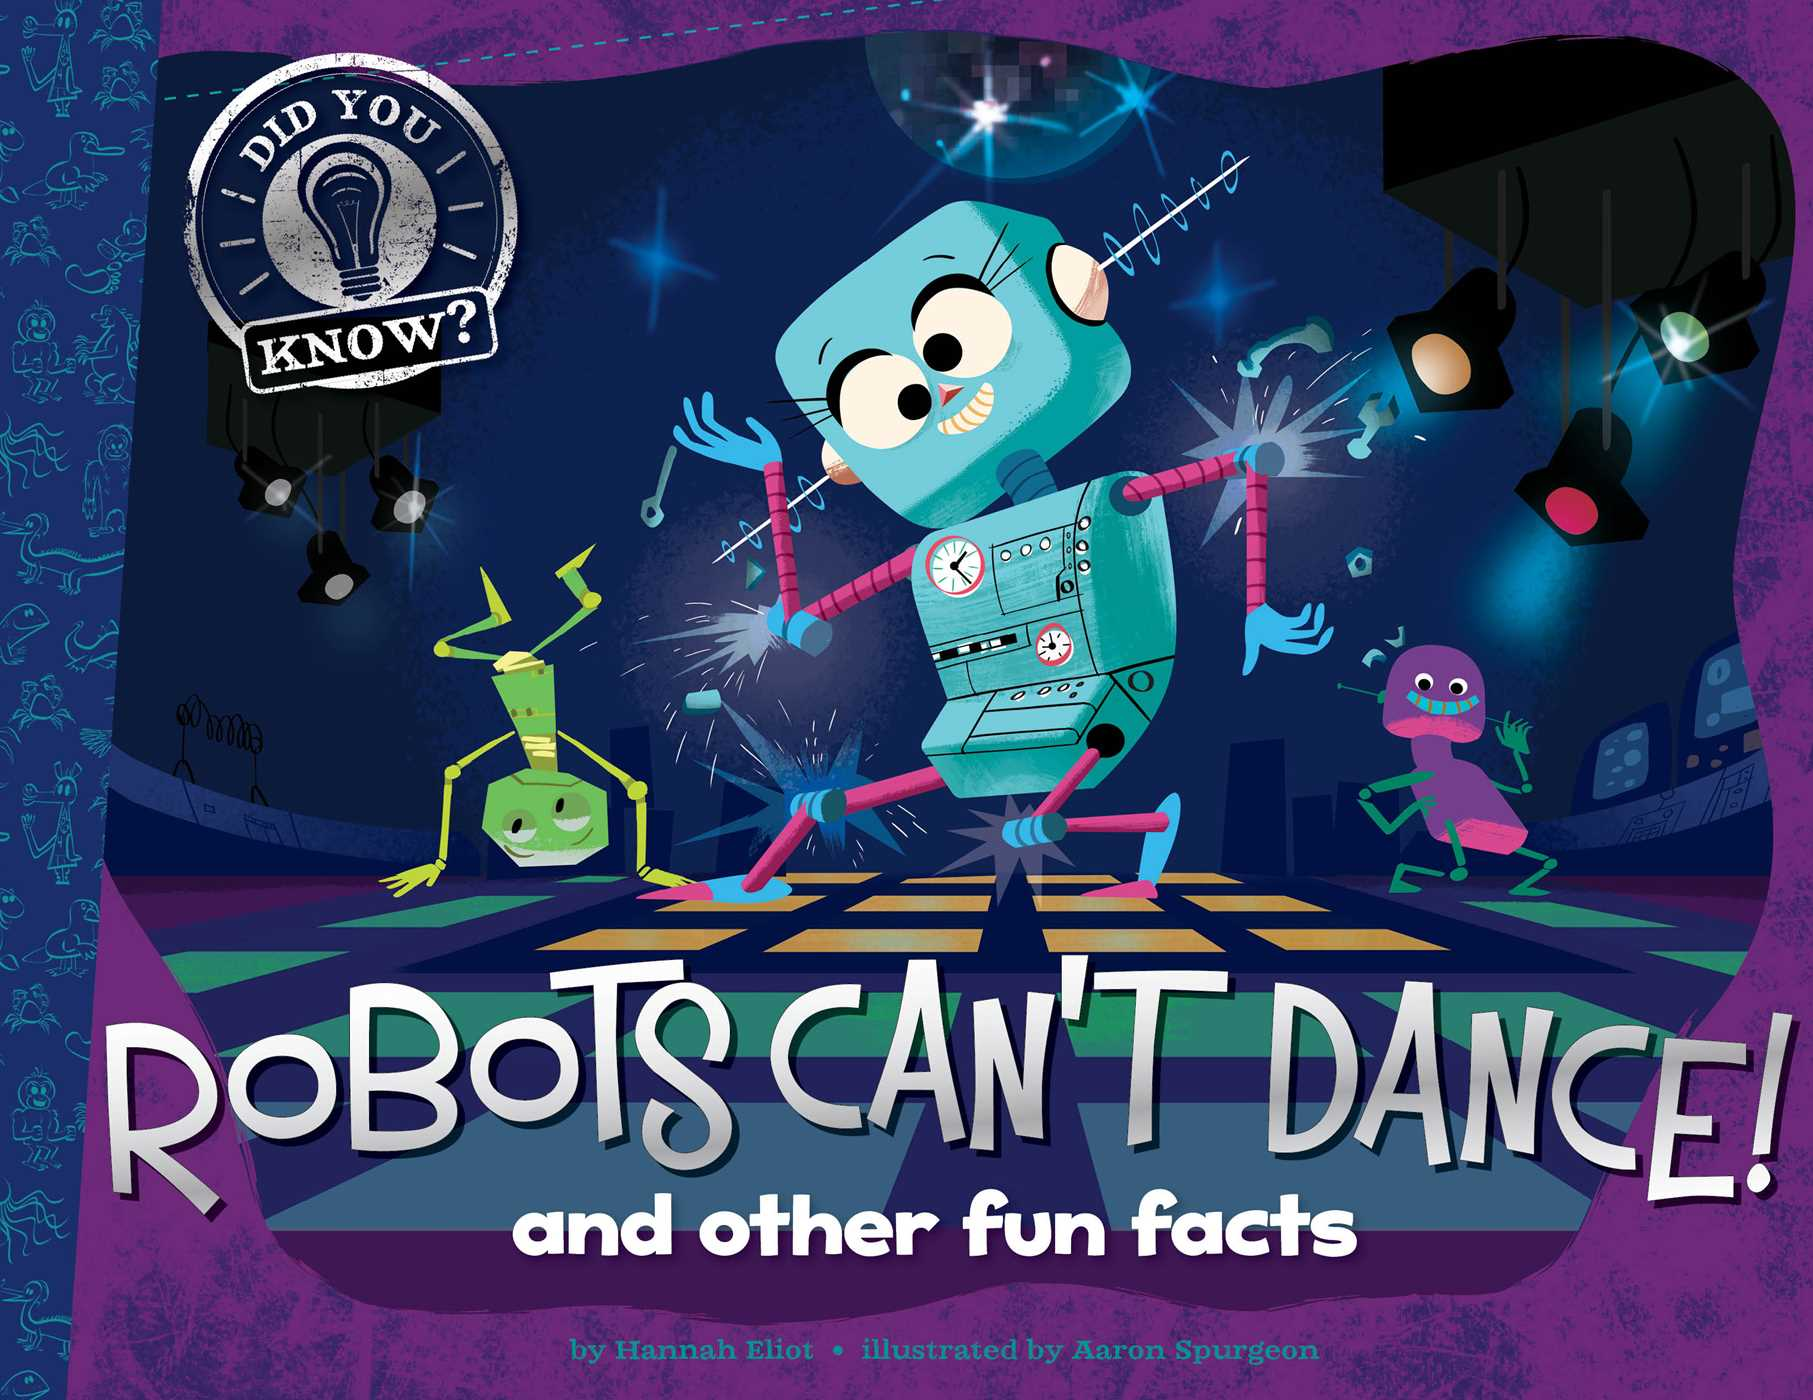 Robots cant dance 9781481491945 hr